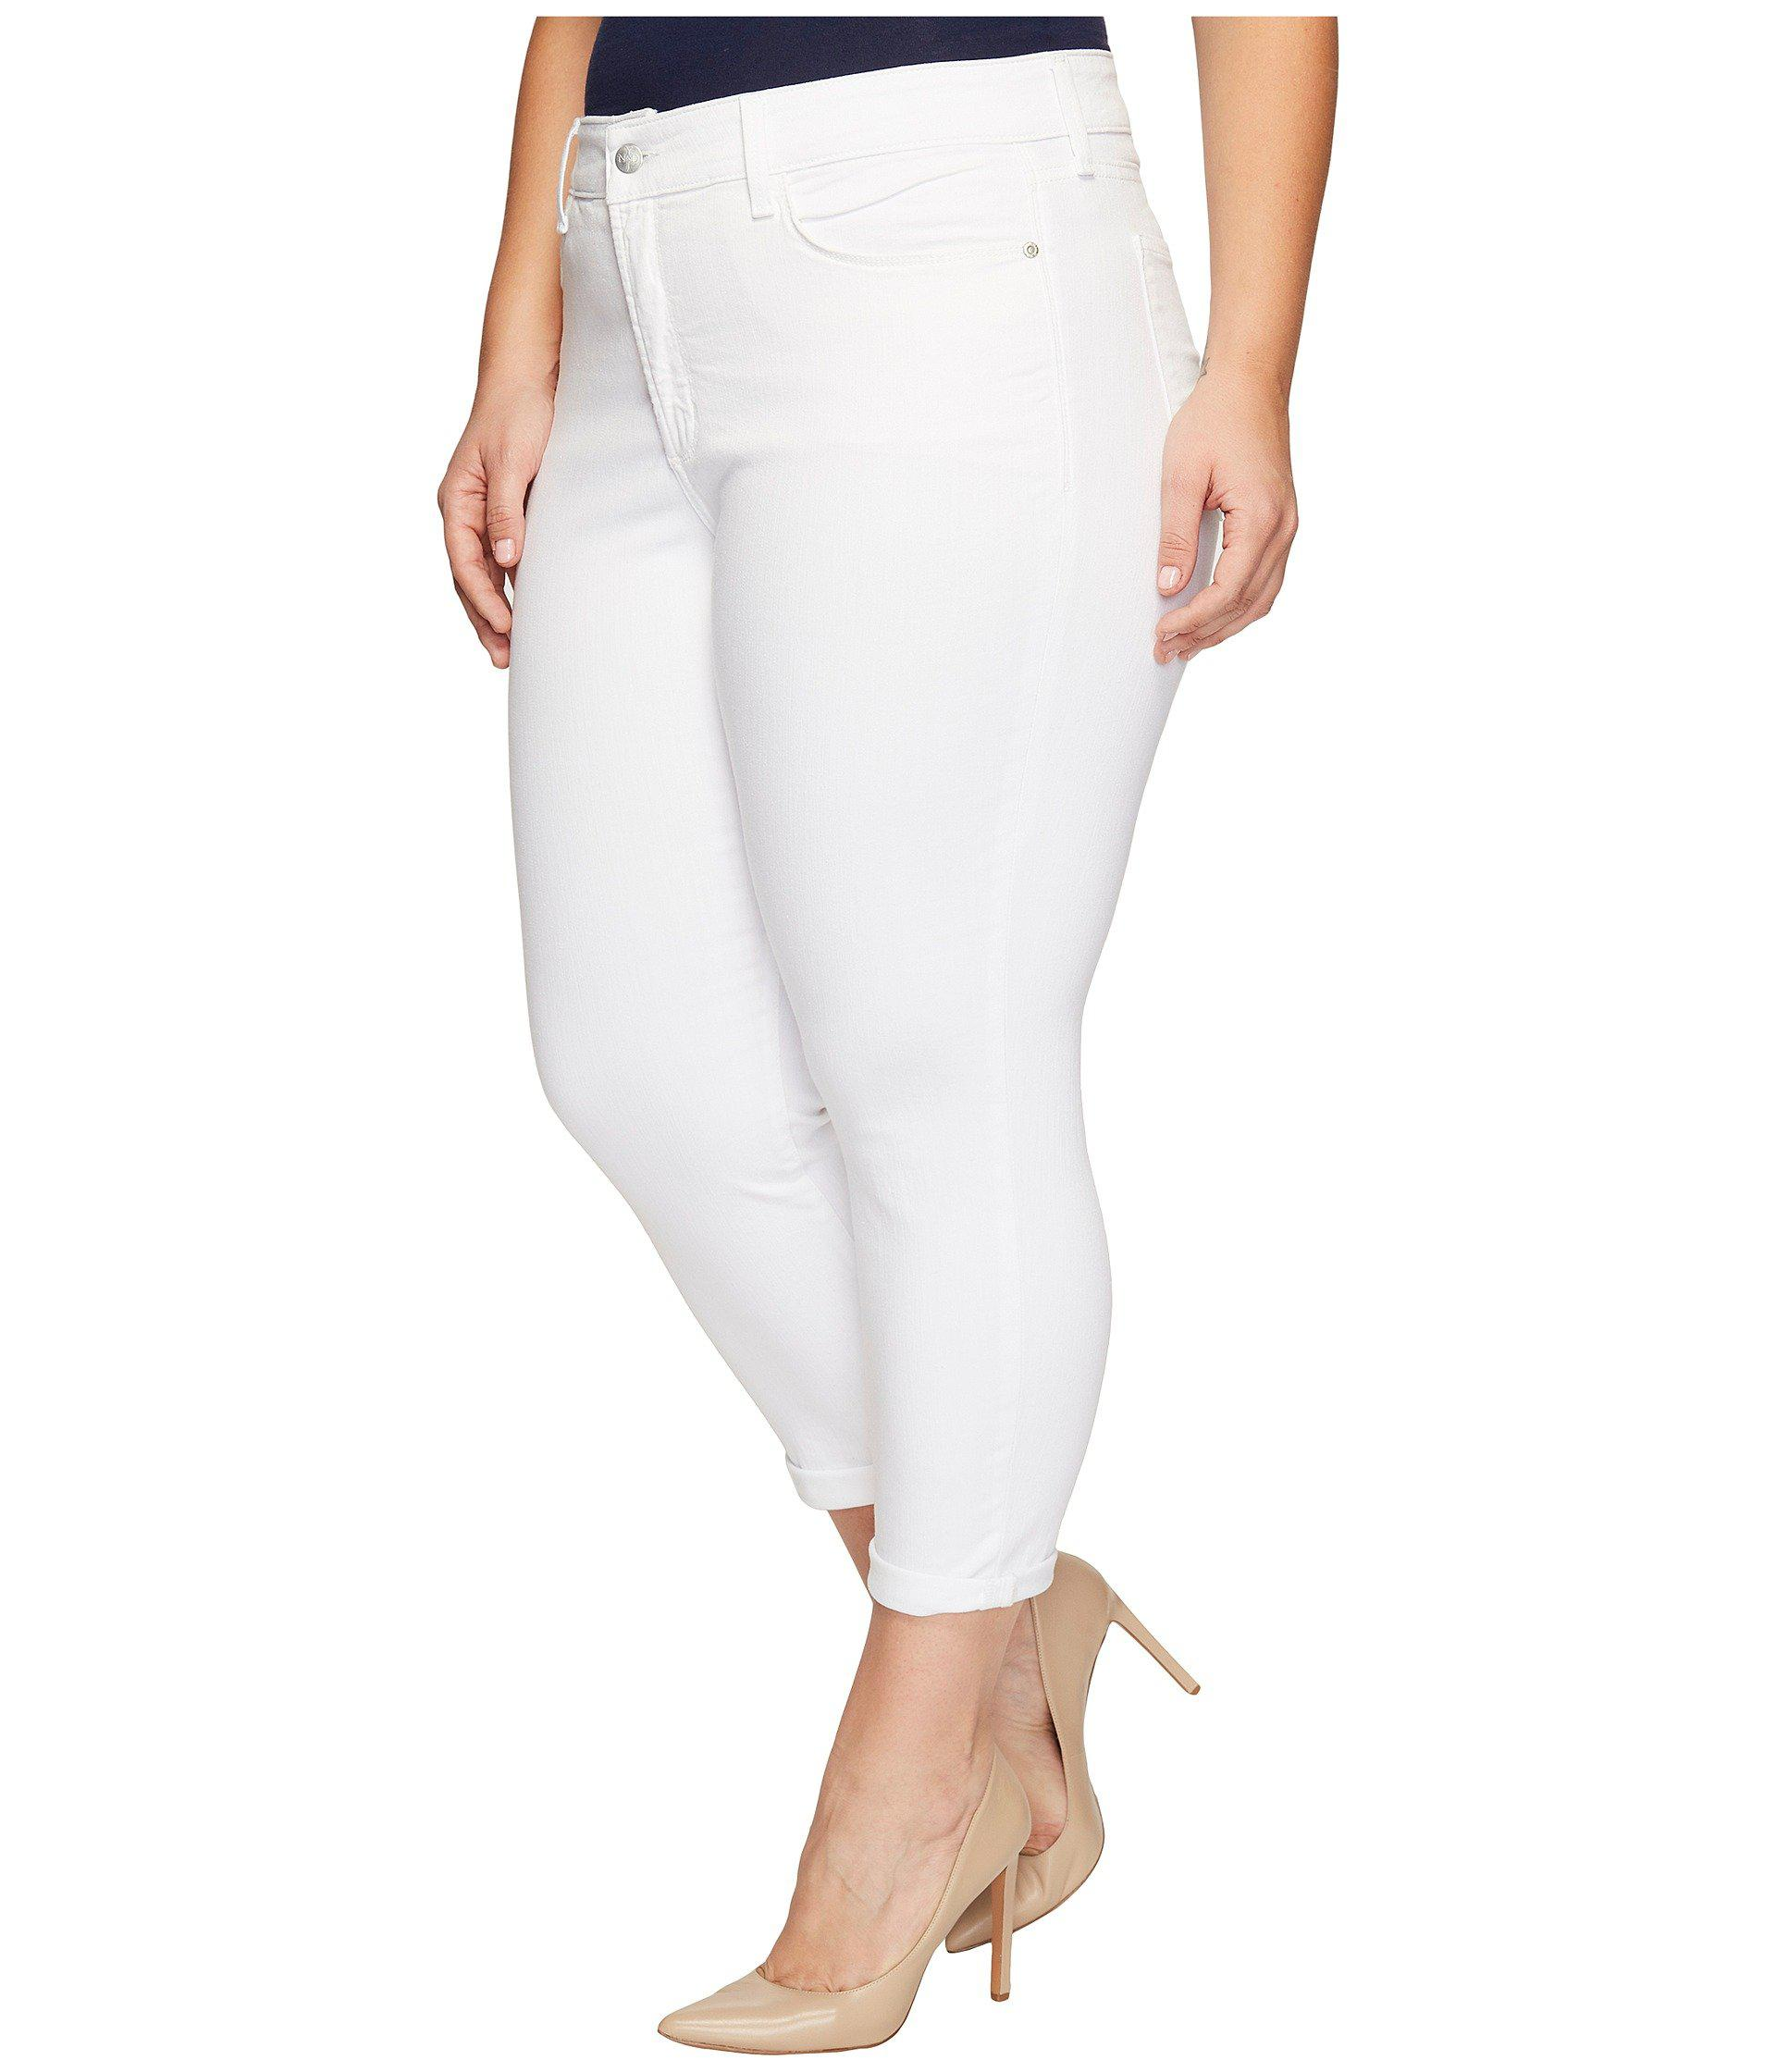 ac3e5698dd4 Lyst - NYDJ Plus Size Alina Convertible Ankle In Optic White in White